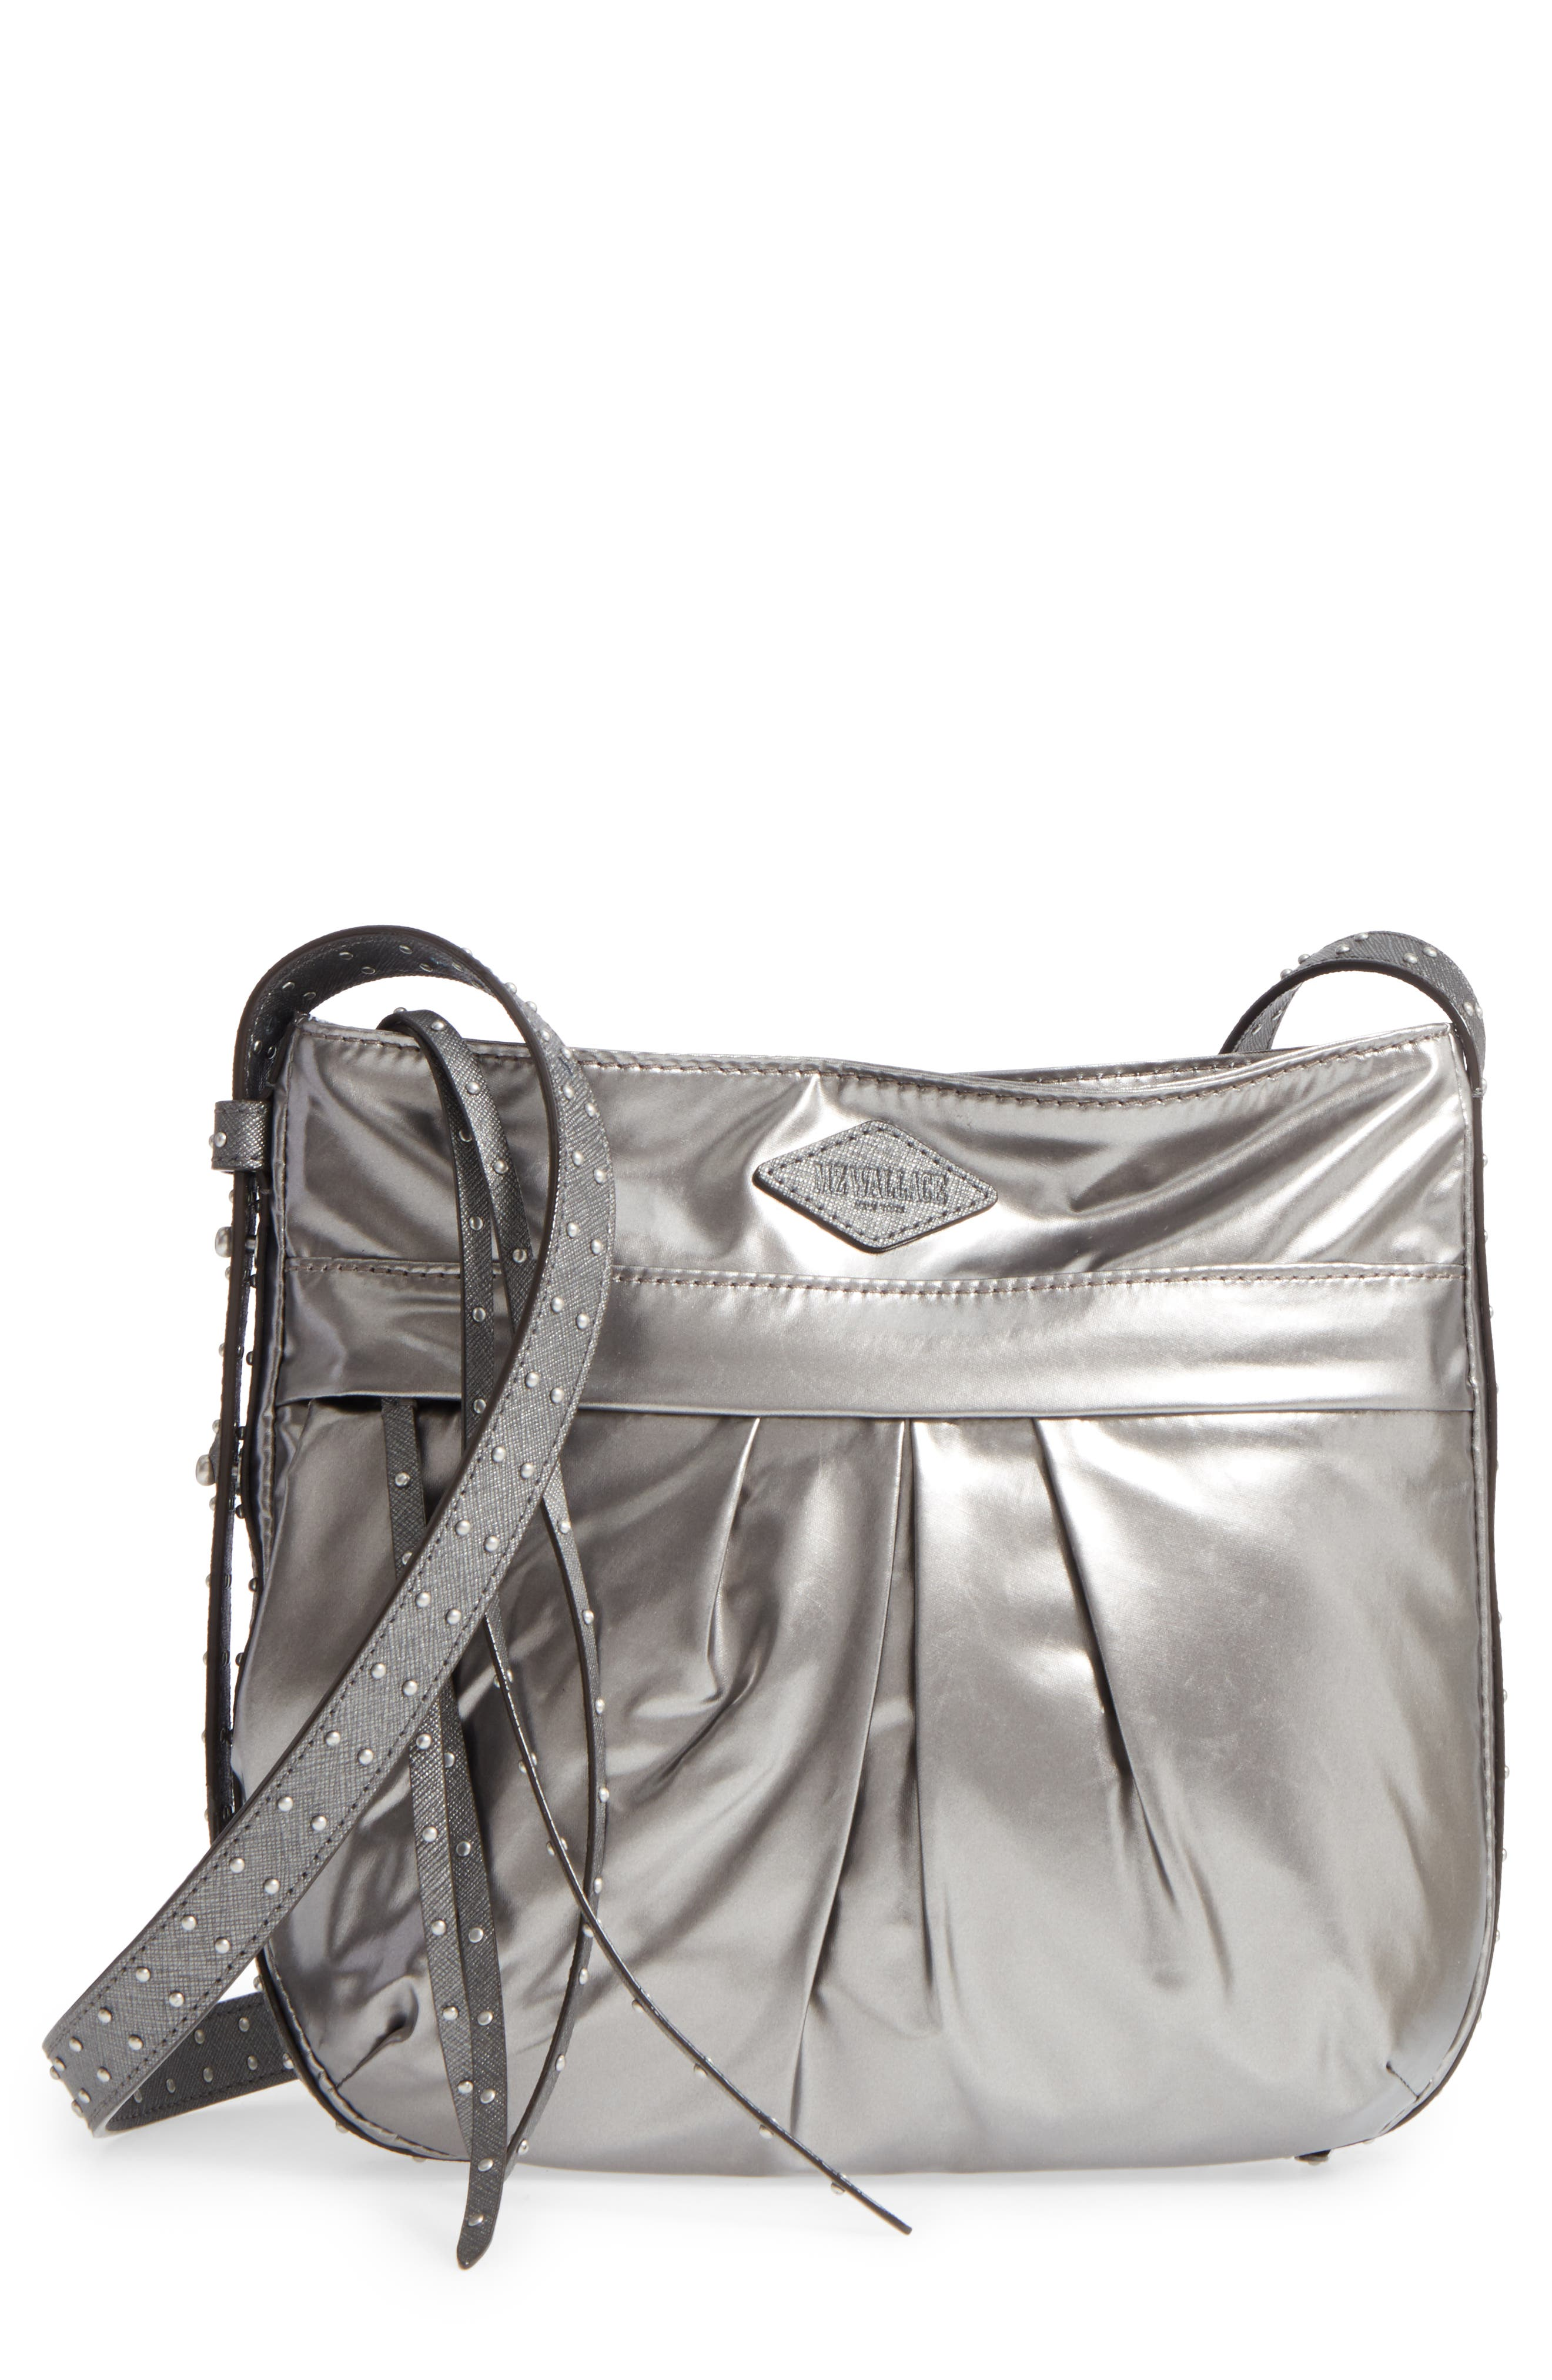 Harlow Crossbody Bag,                         Main,                         color, Pewter Leather Cococha